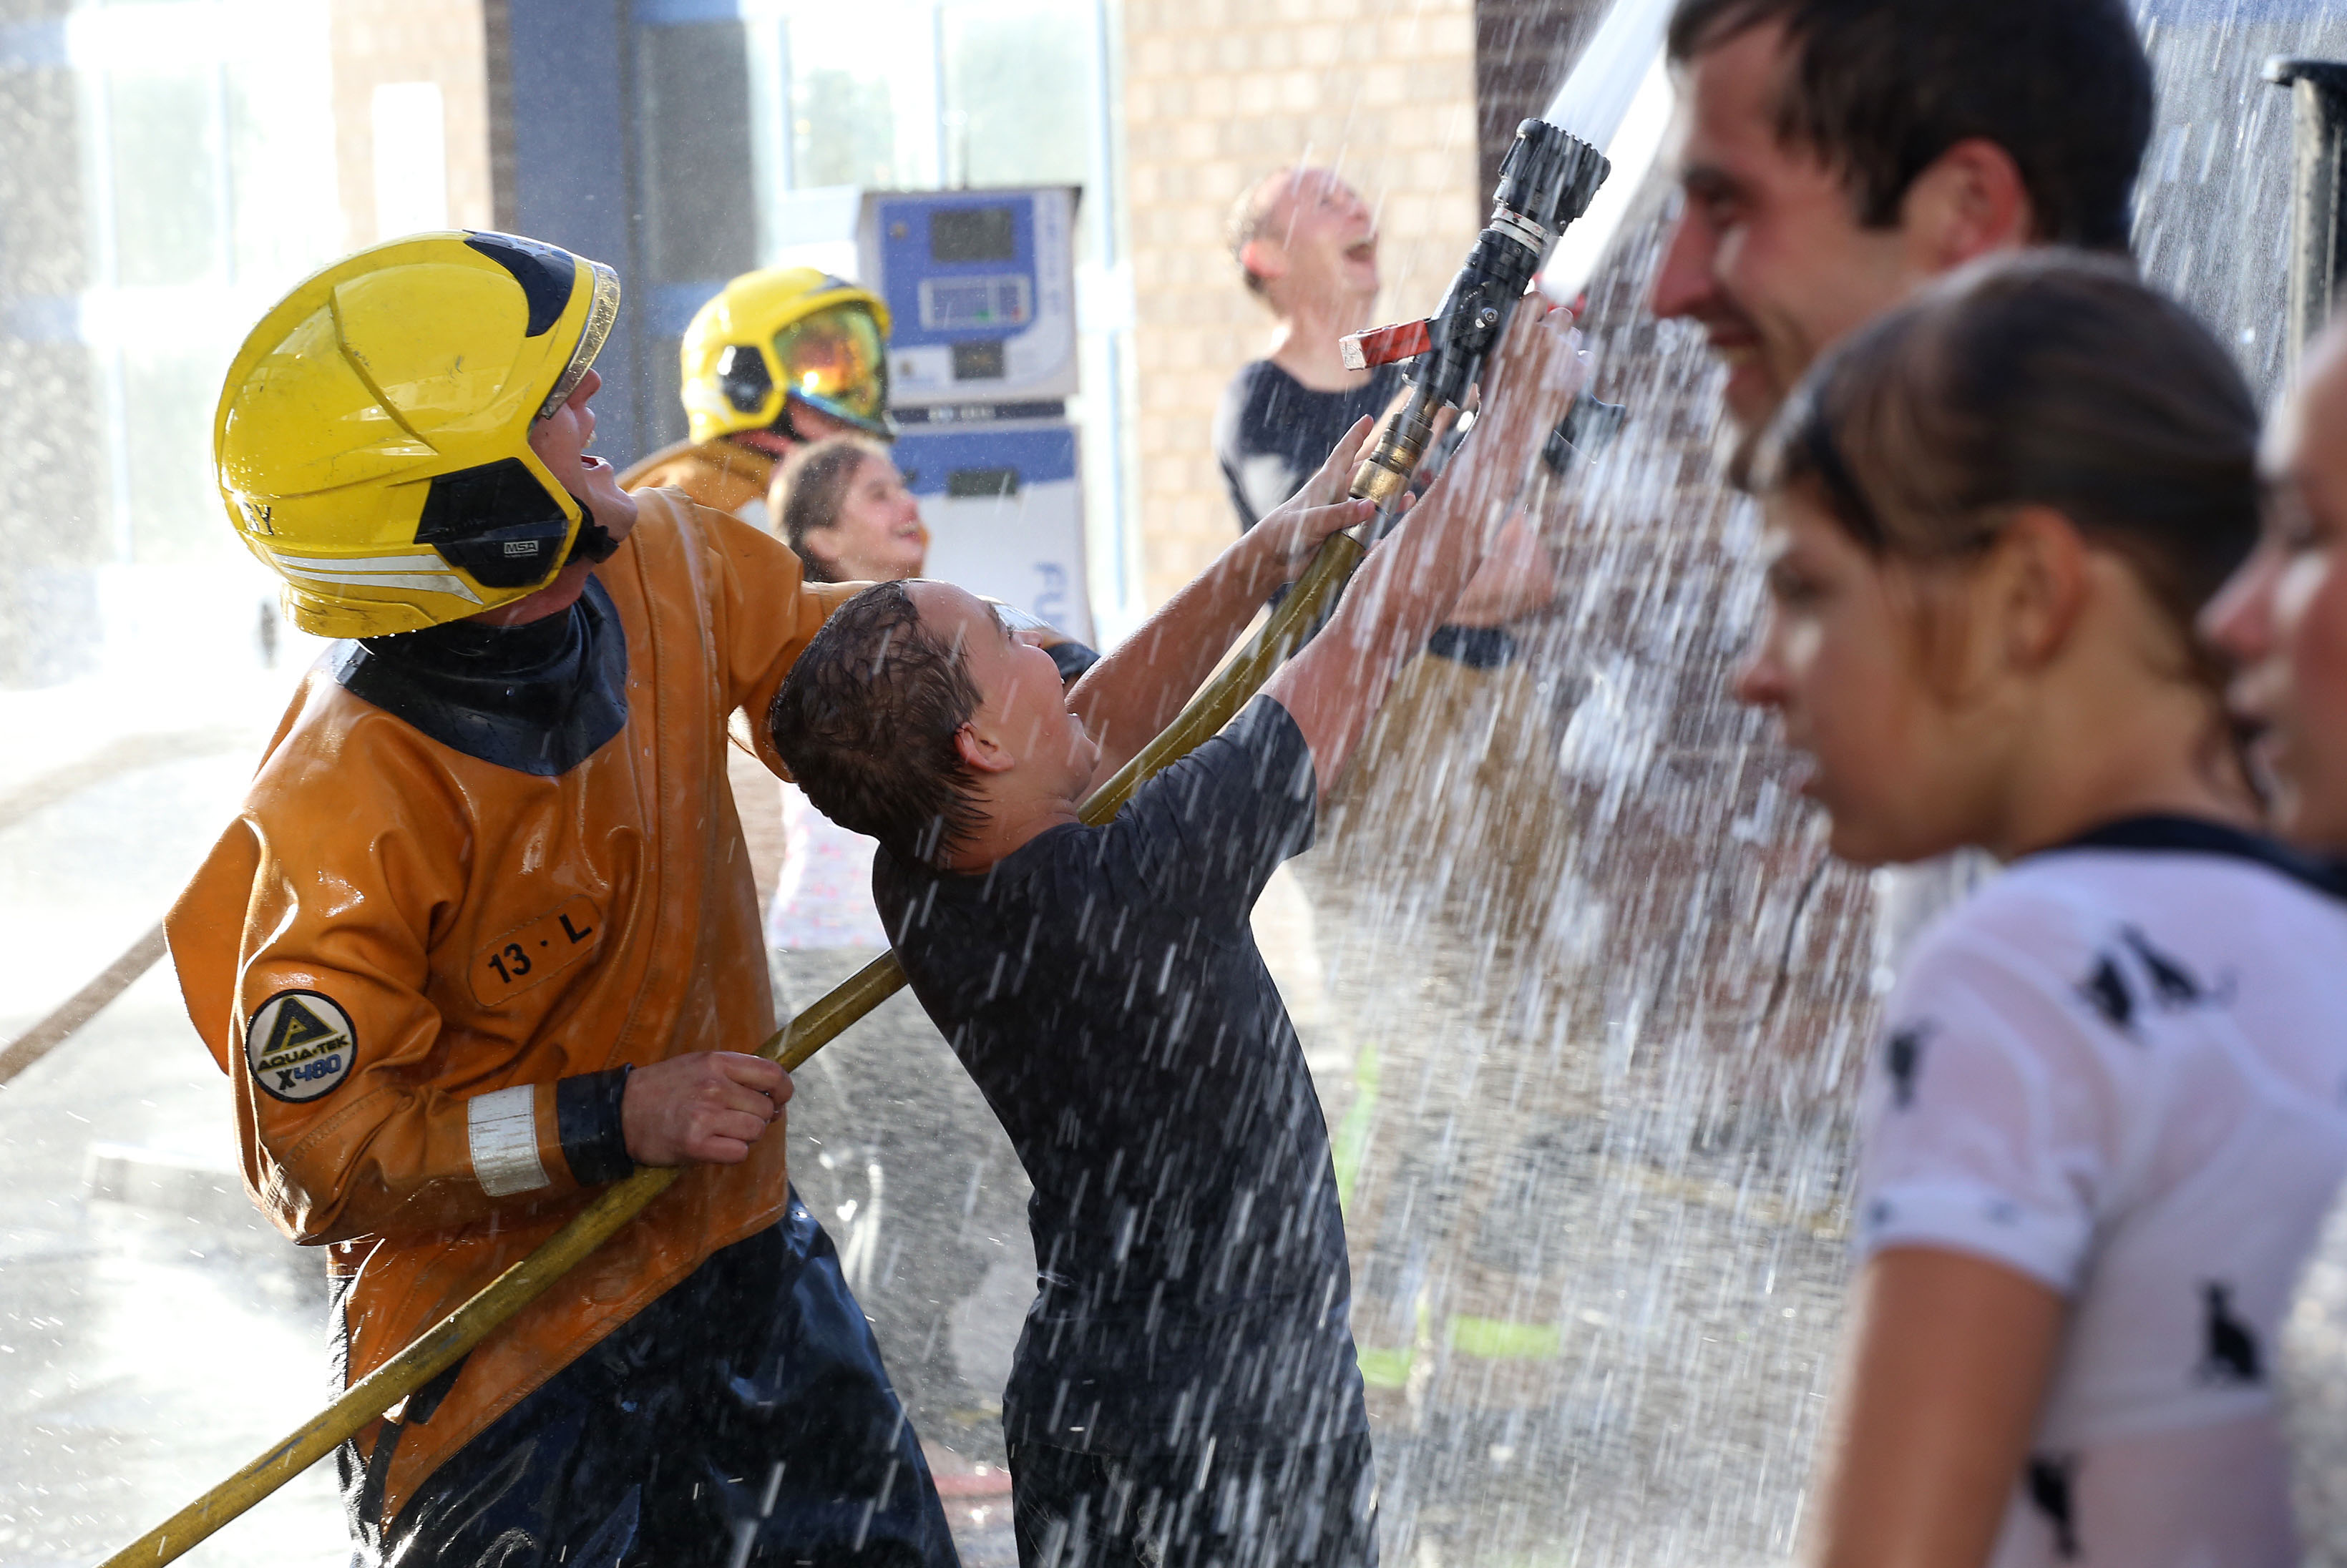 Fun with Shropshire firefighters for a boy from Chernobyl